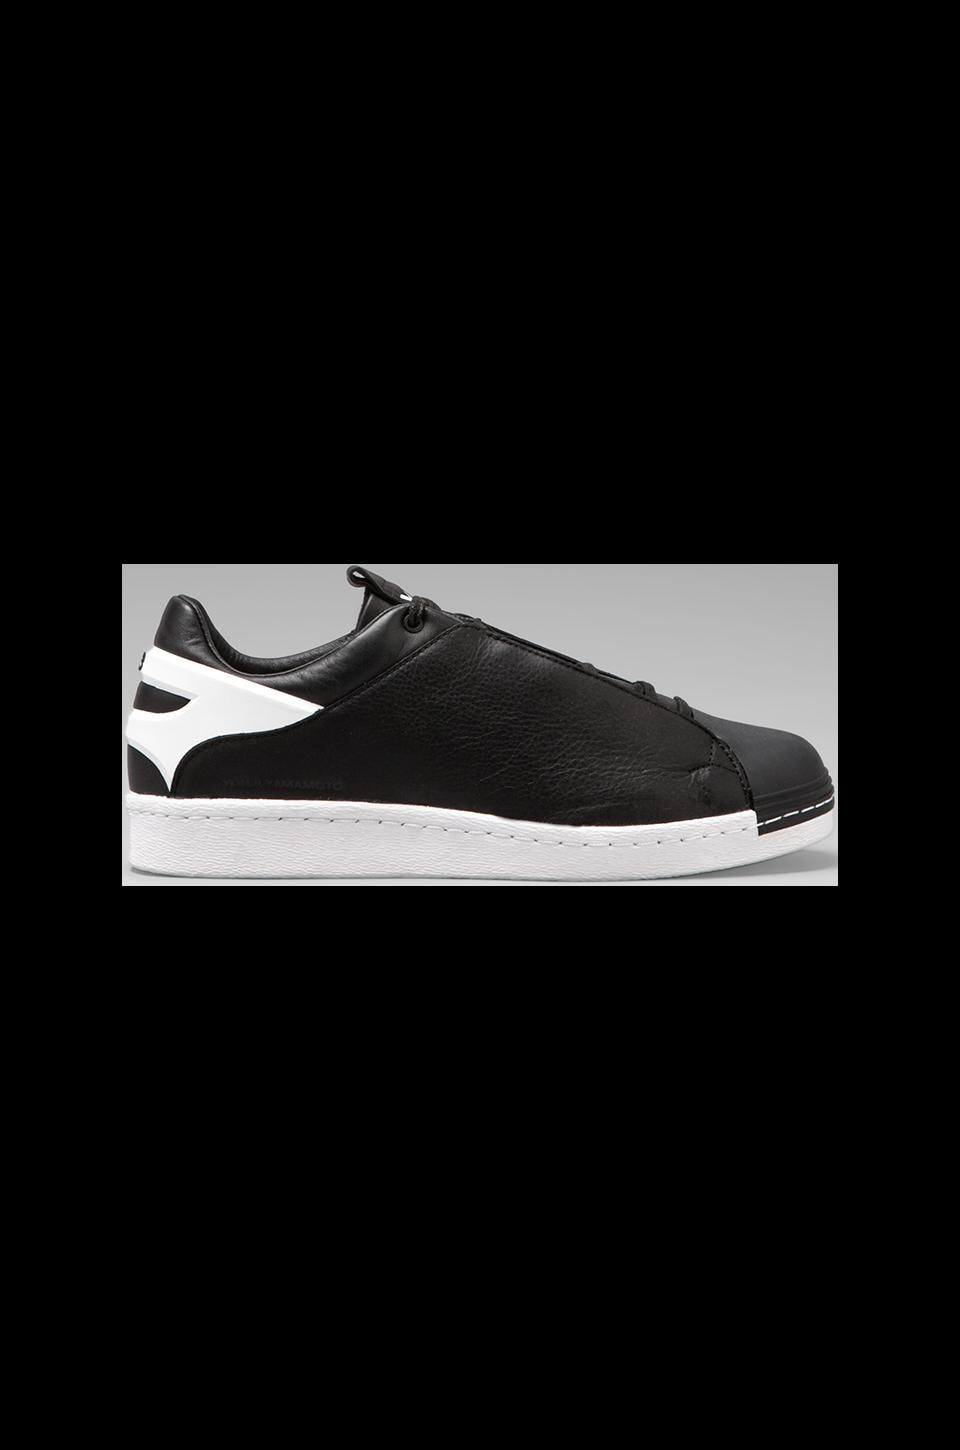 Y-3 Yohji Yamamoto Smooth Star in Black/ Black/ White